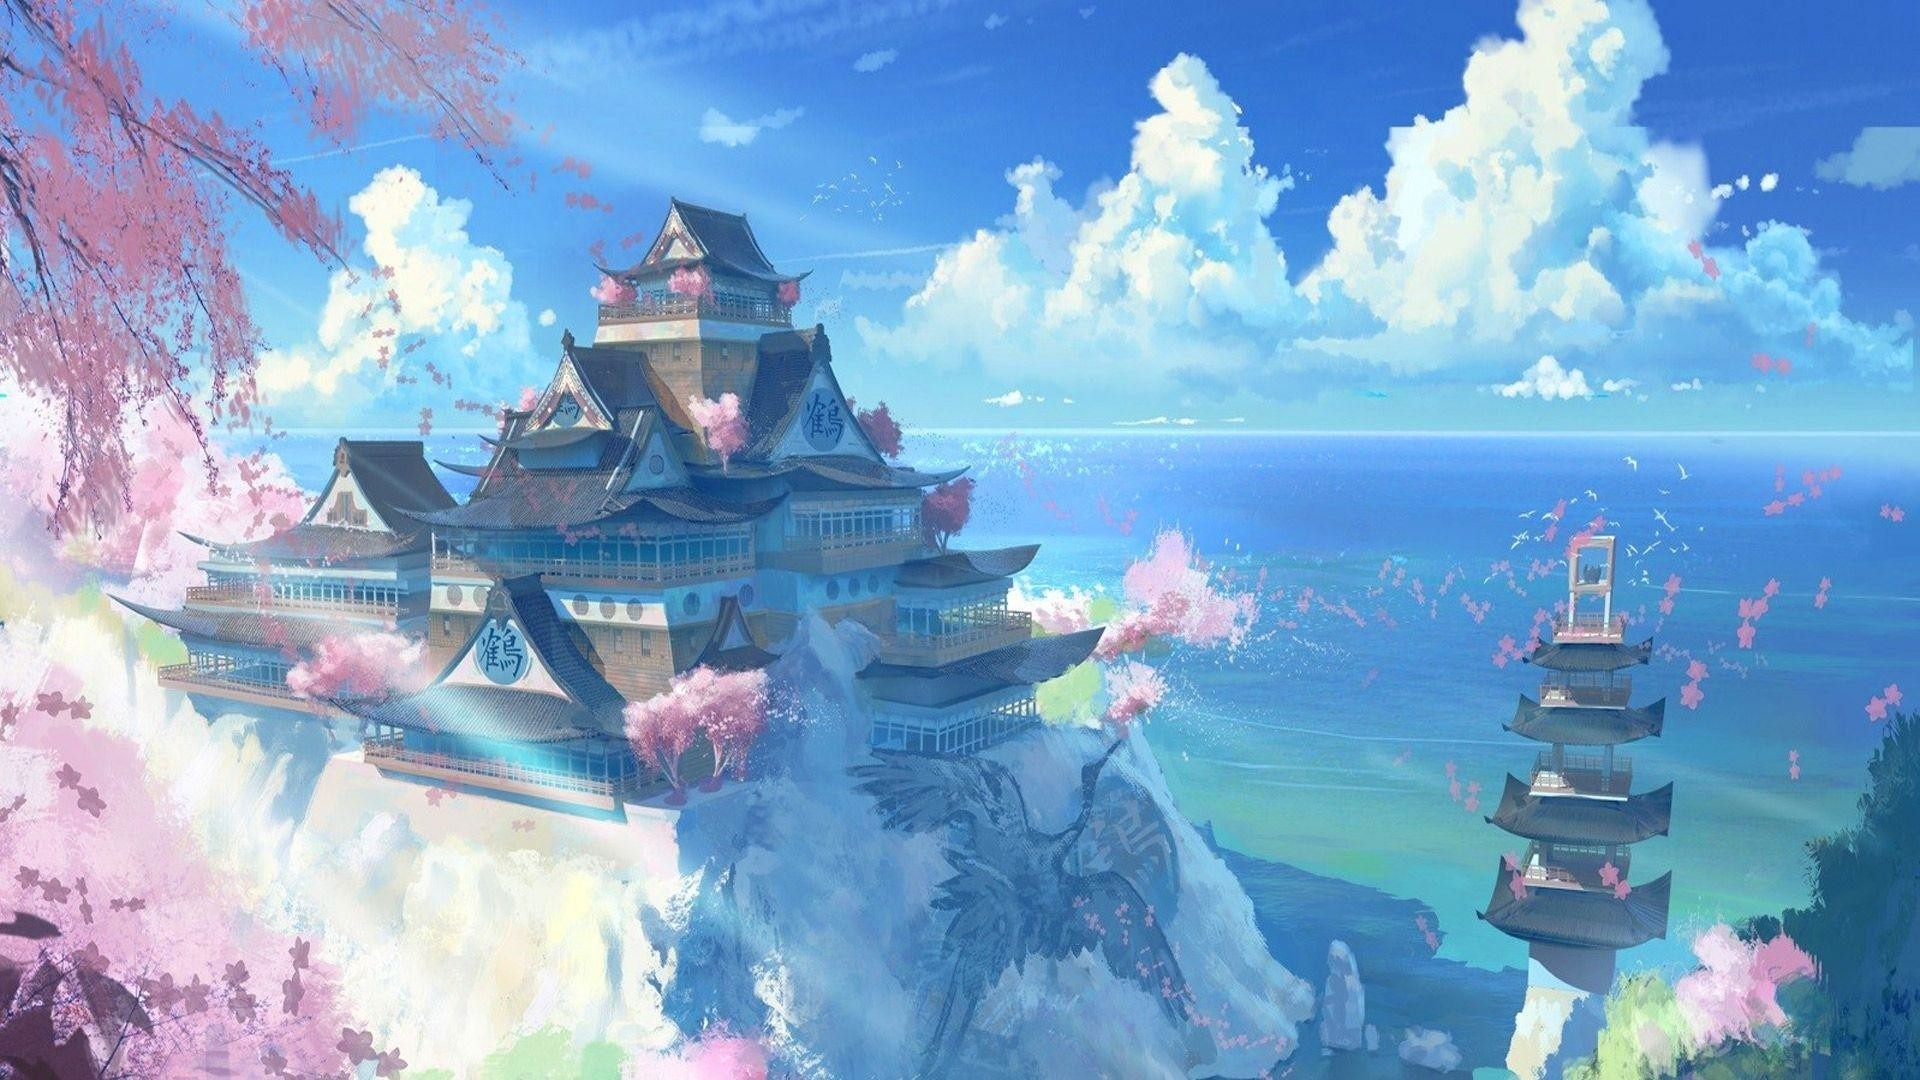 Aesthetic Anime Hd Wallpapers 20 Images Wallpaperboat